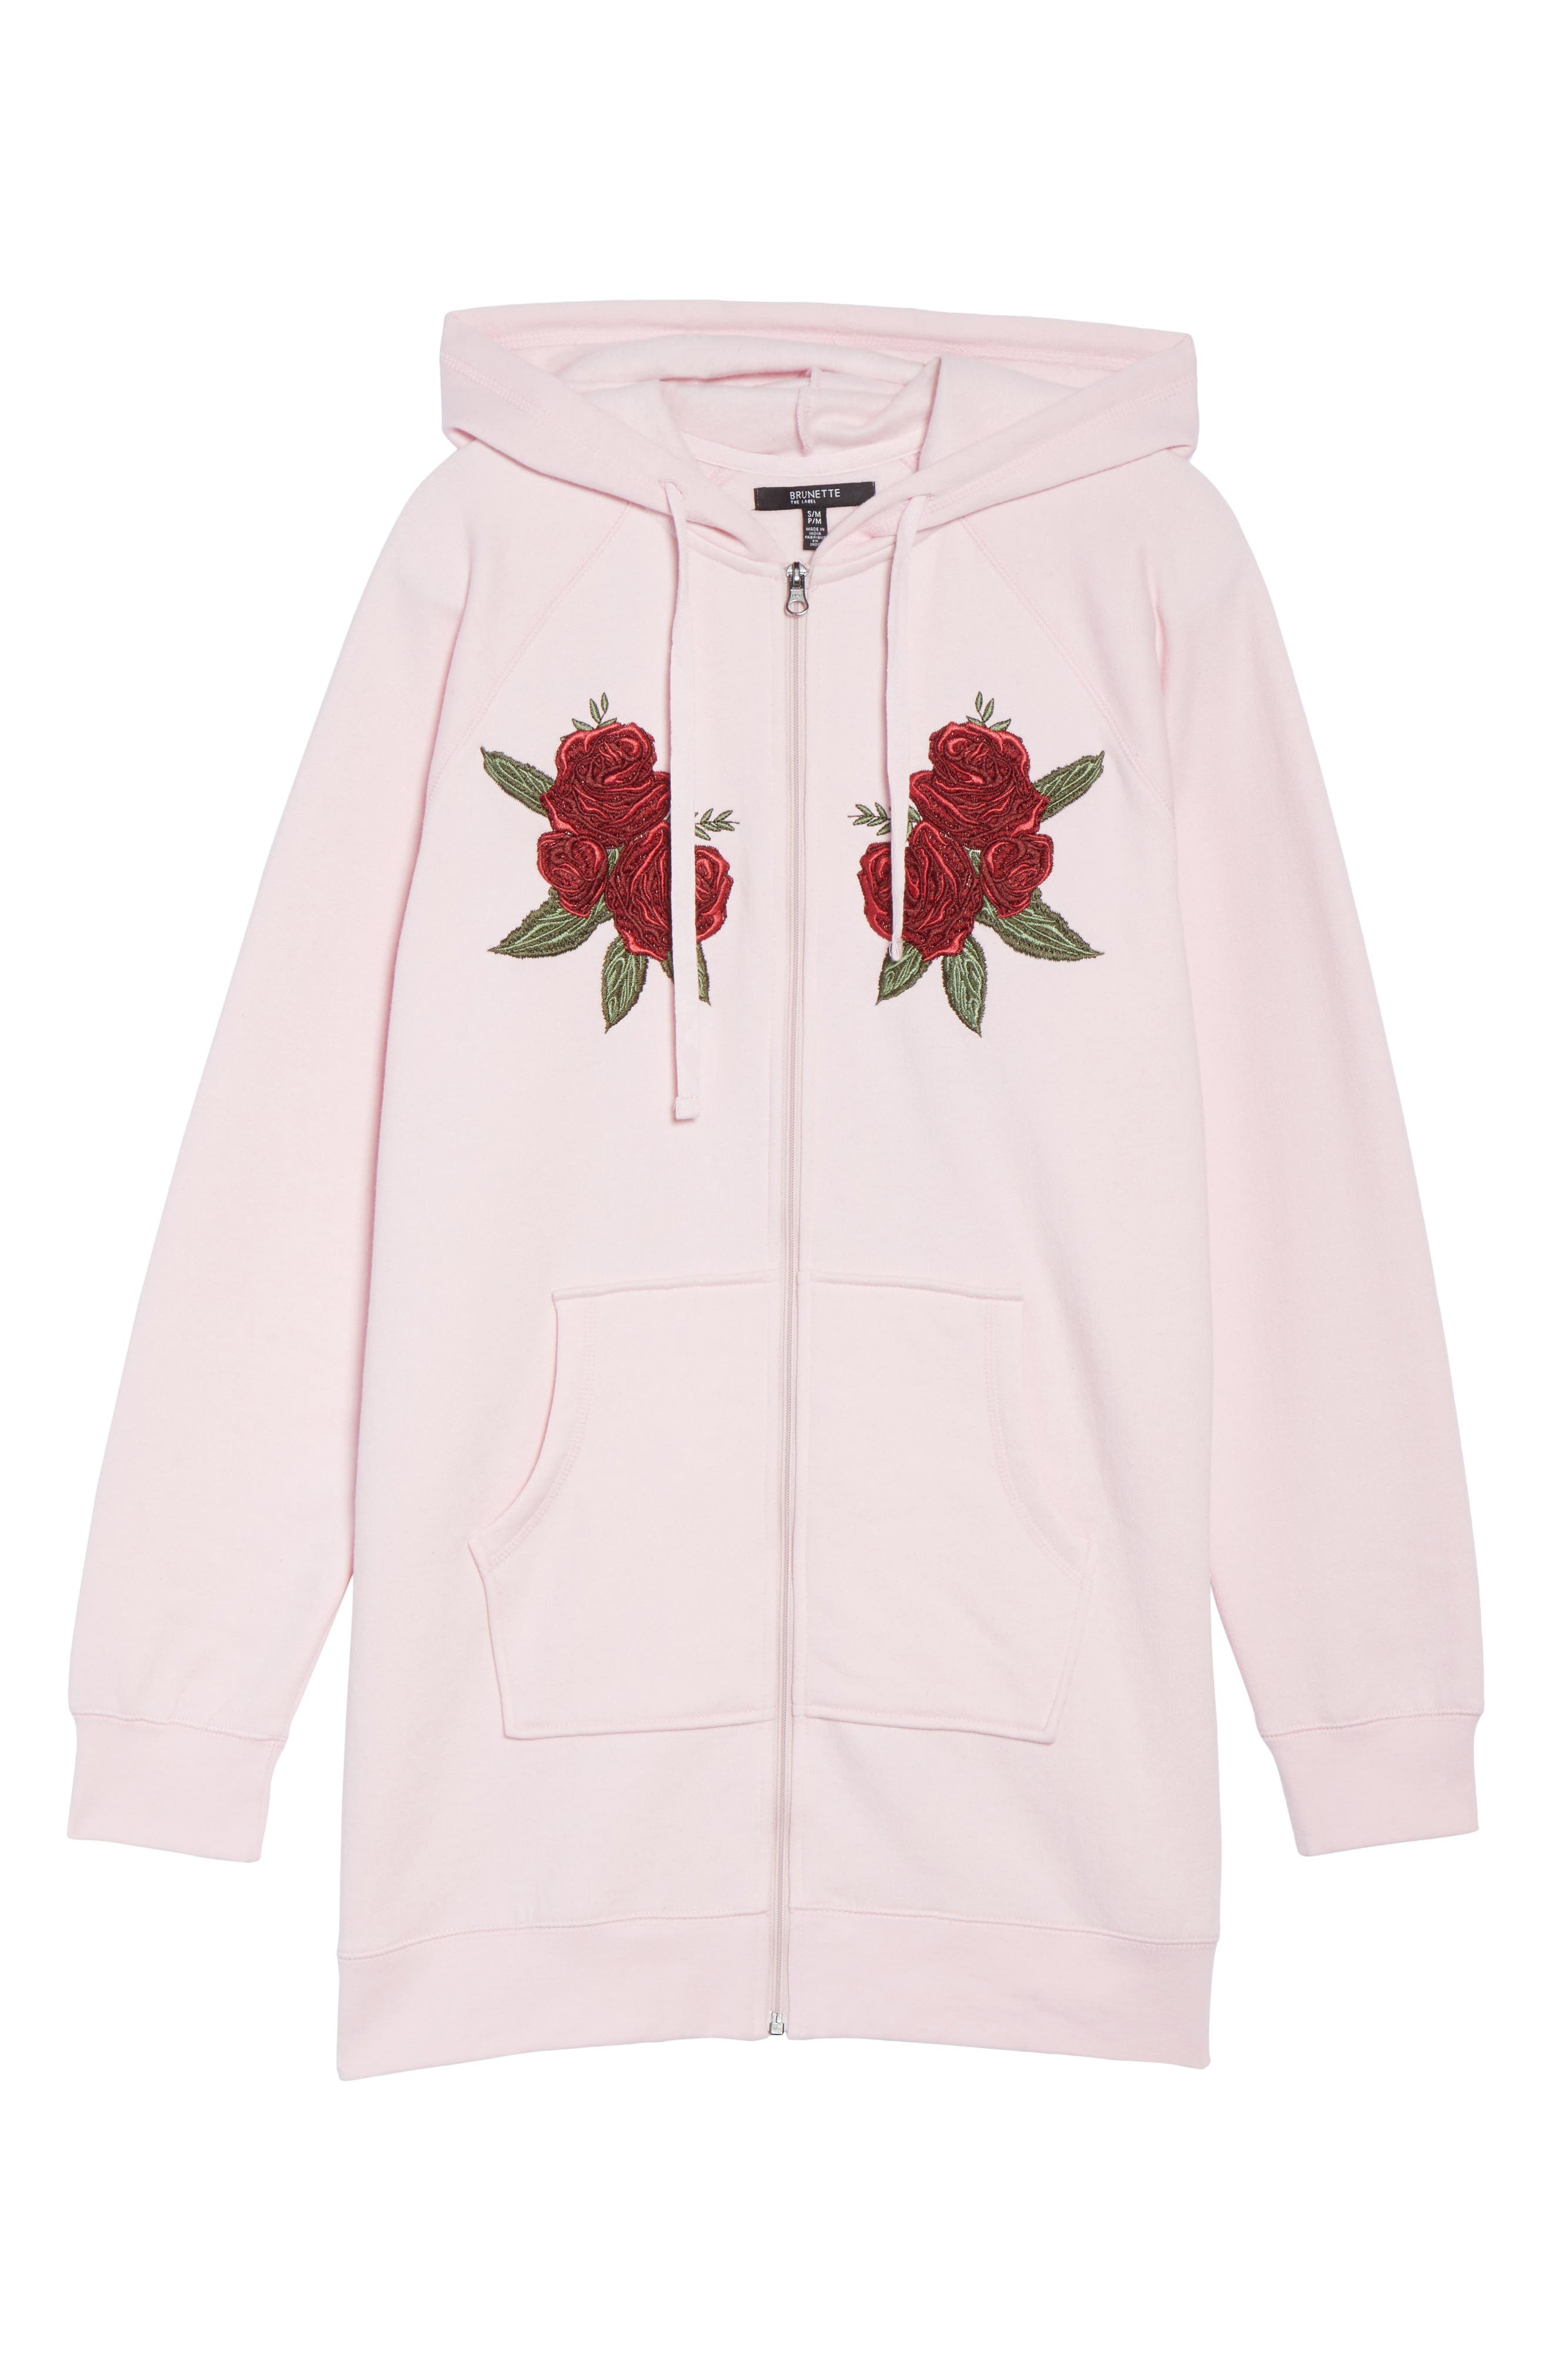 Brunette Embroidered Zip Hoodie,                             Alternate thumbnail 6, color,                             650